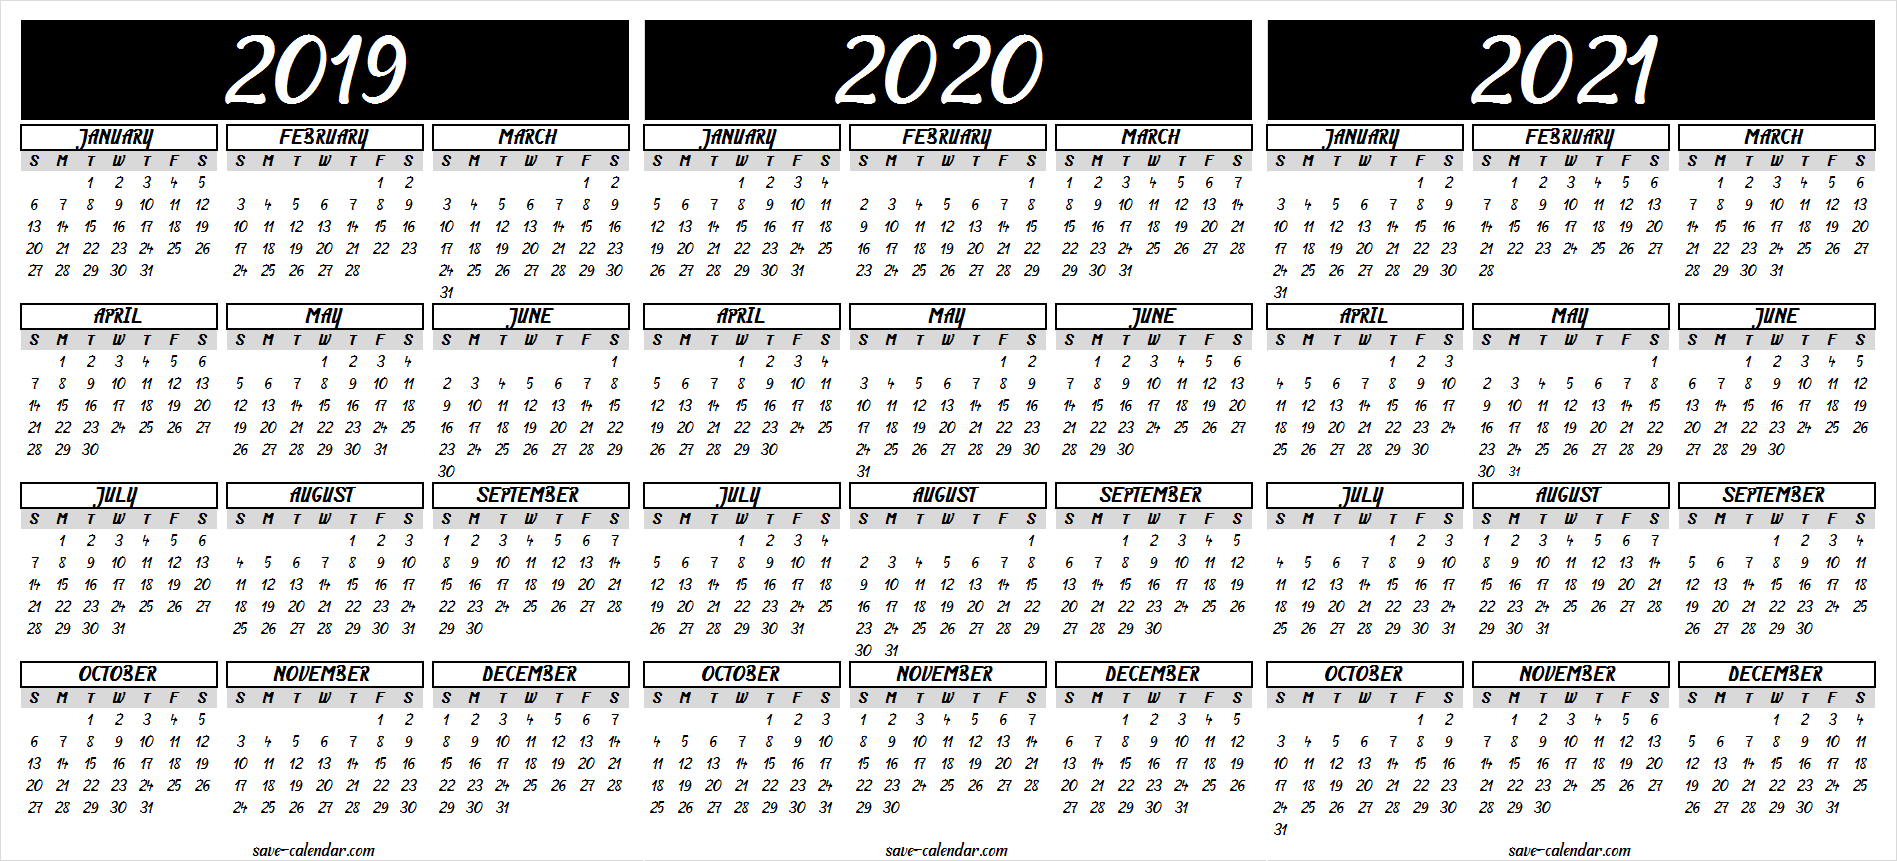 image about 2021 Calendar Printable known as 2019 2020 2021 Calendar Printable 2018 Calendar 2021